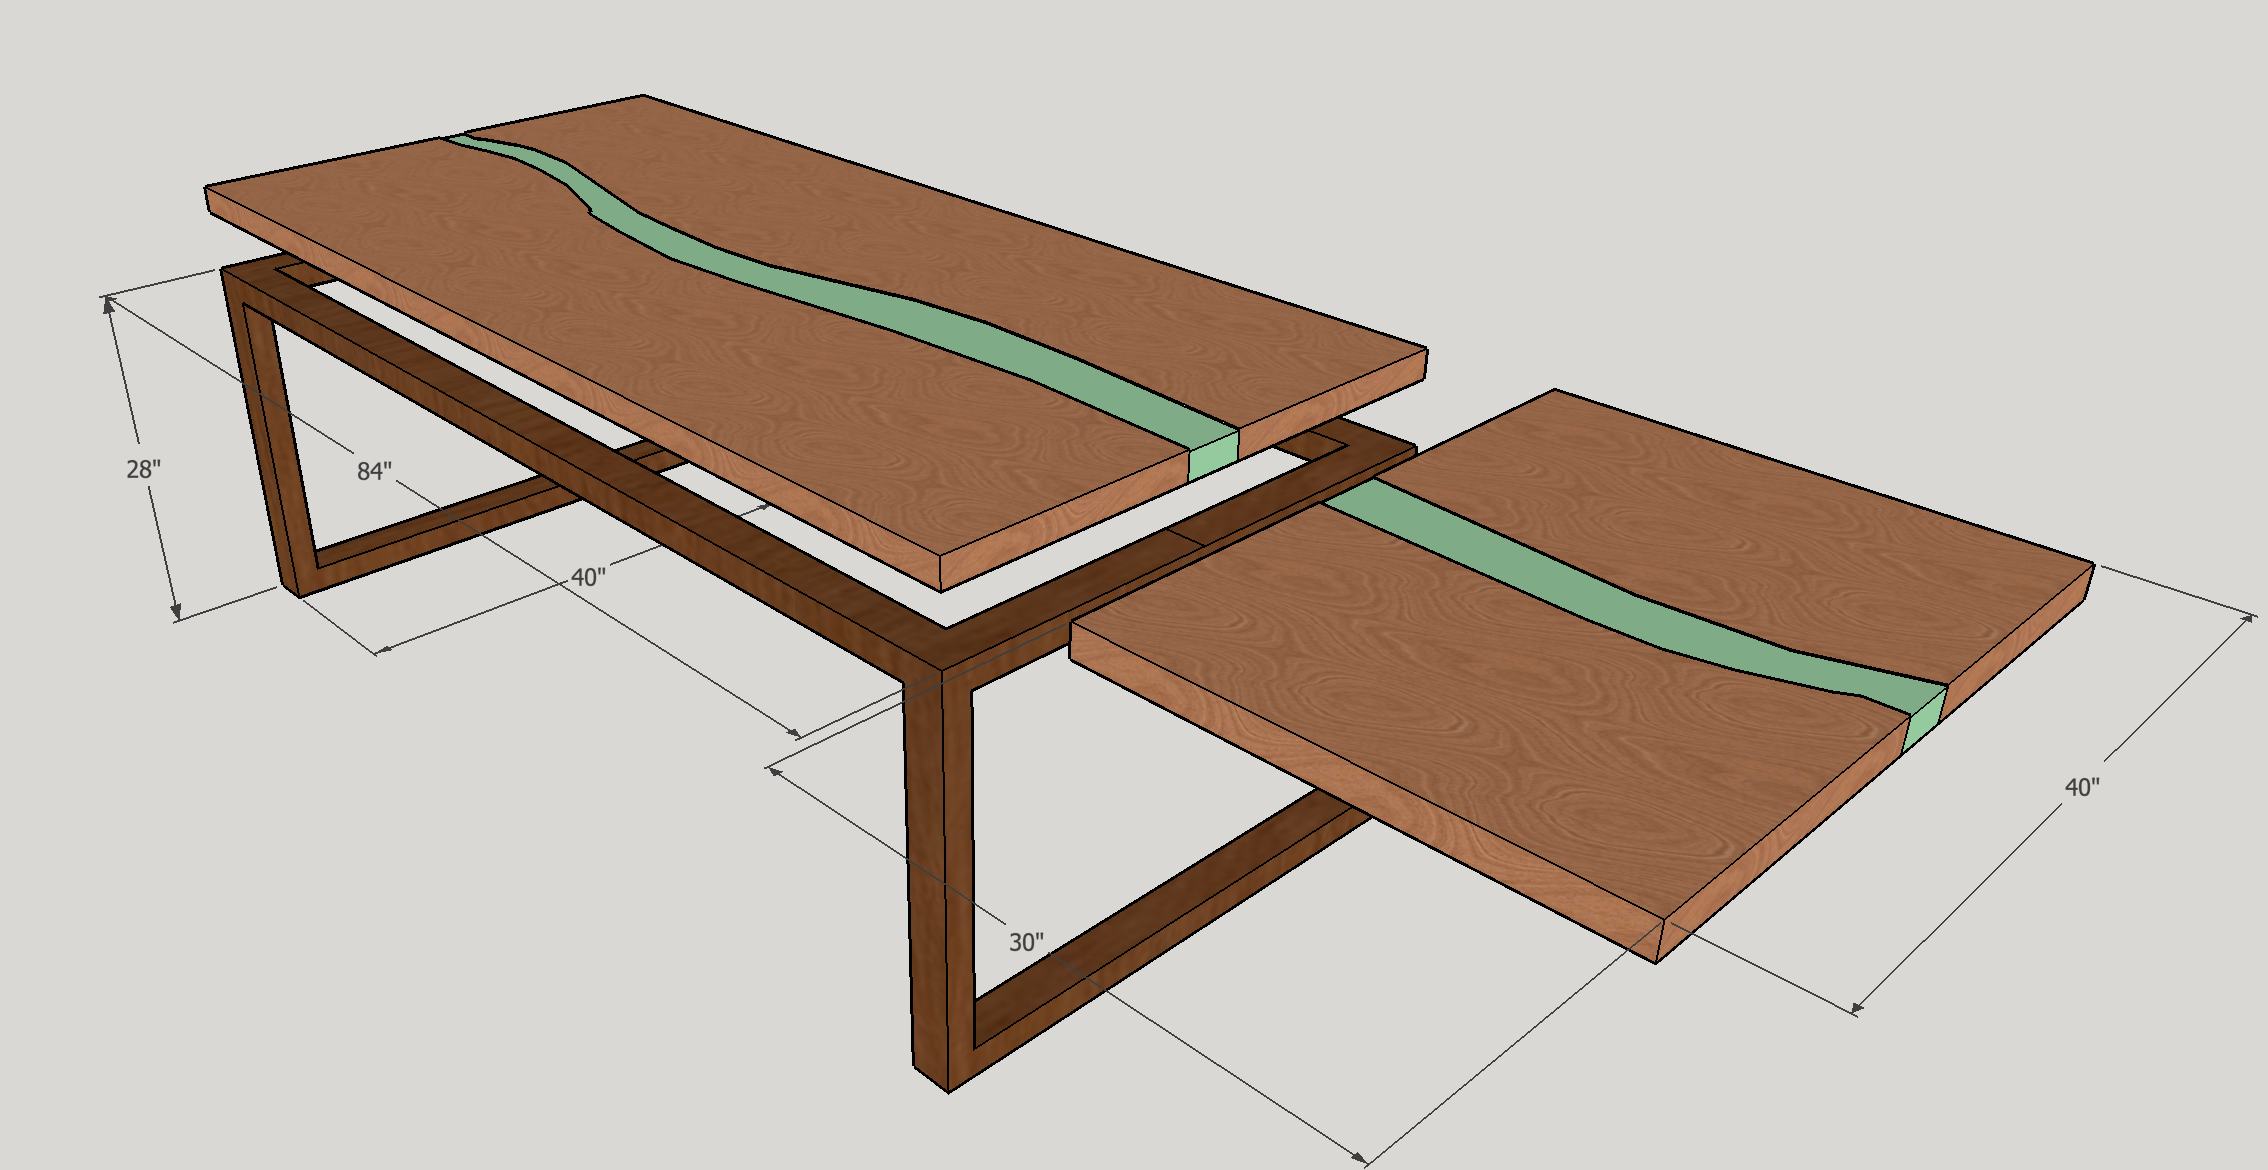 Interested In a custom piece? - The design process for custom work is collaborative and the process is straightforward. Click the link below to get started on an estimate.